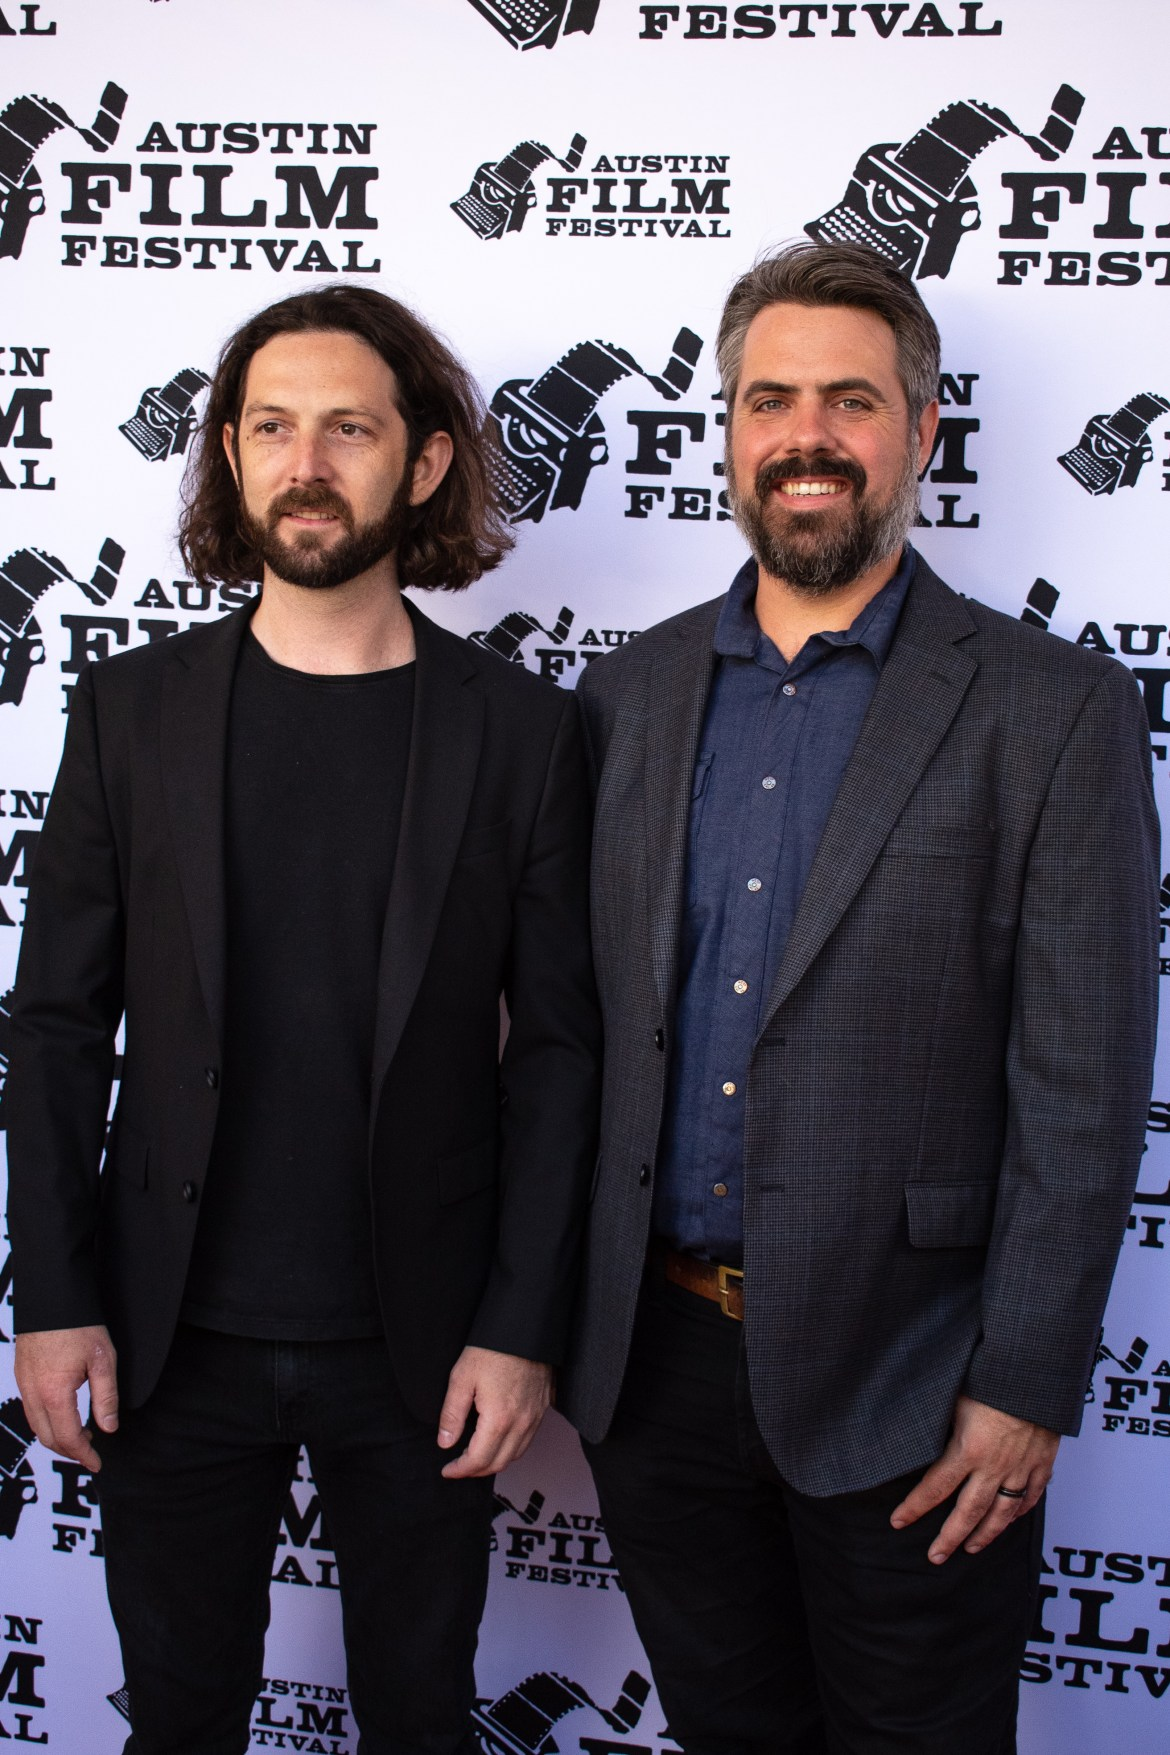 One man on the left is wearing all black and the one on the right wheres a gray suit jacket and a button down shirt. The two men are smiling.